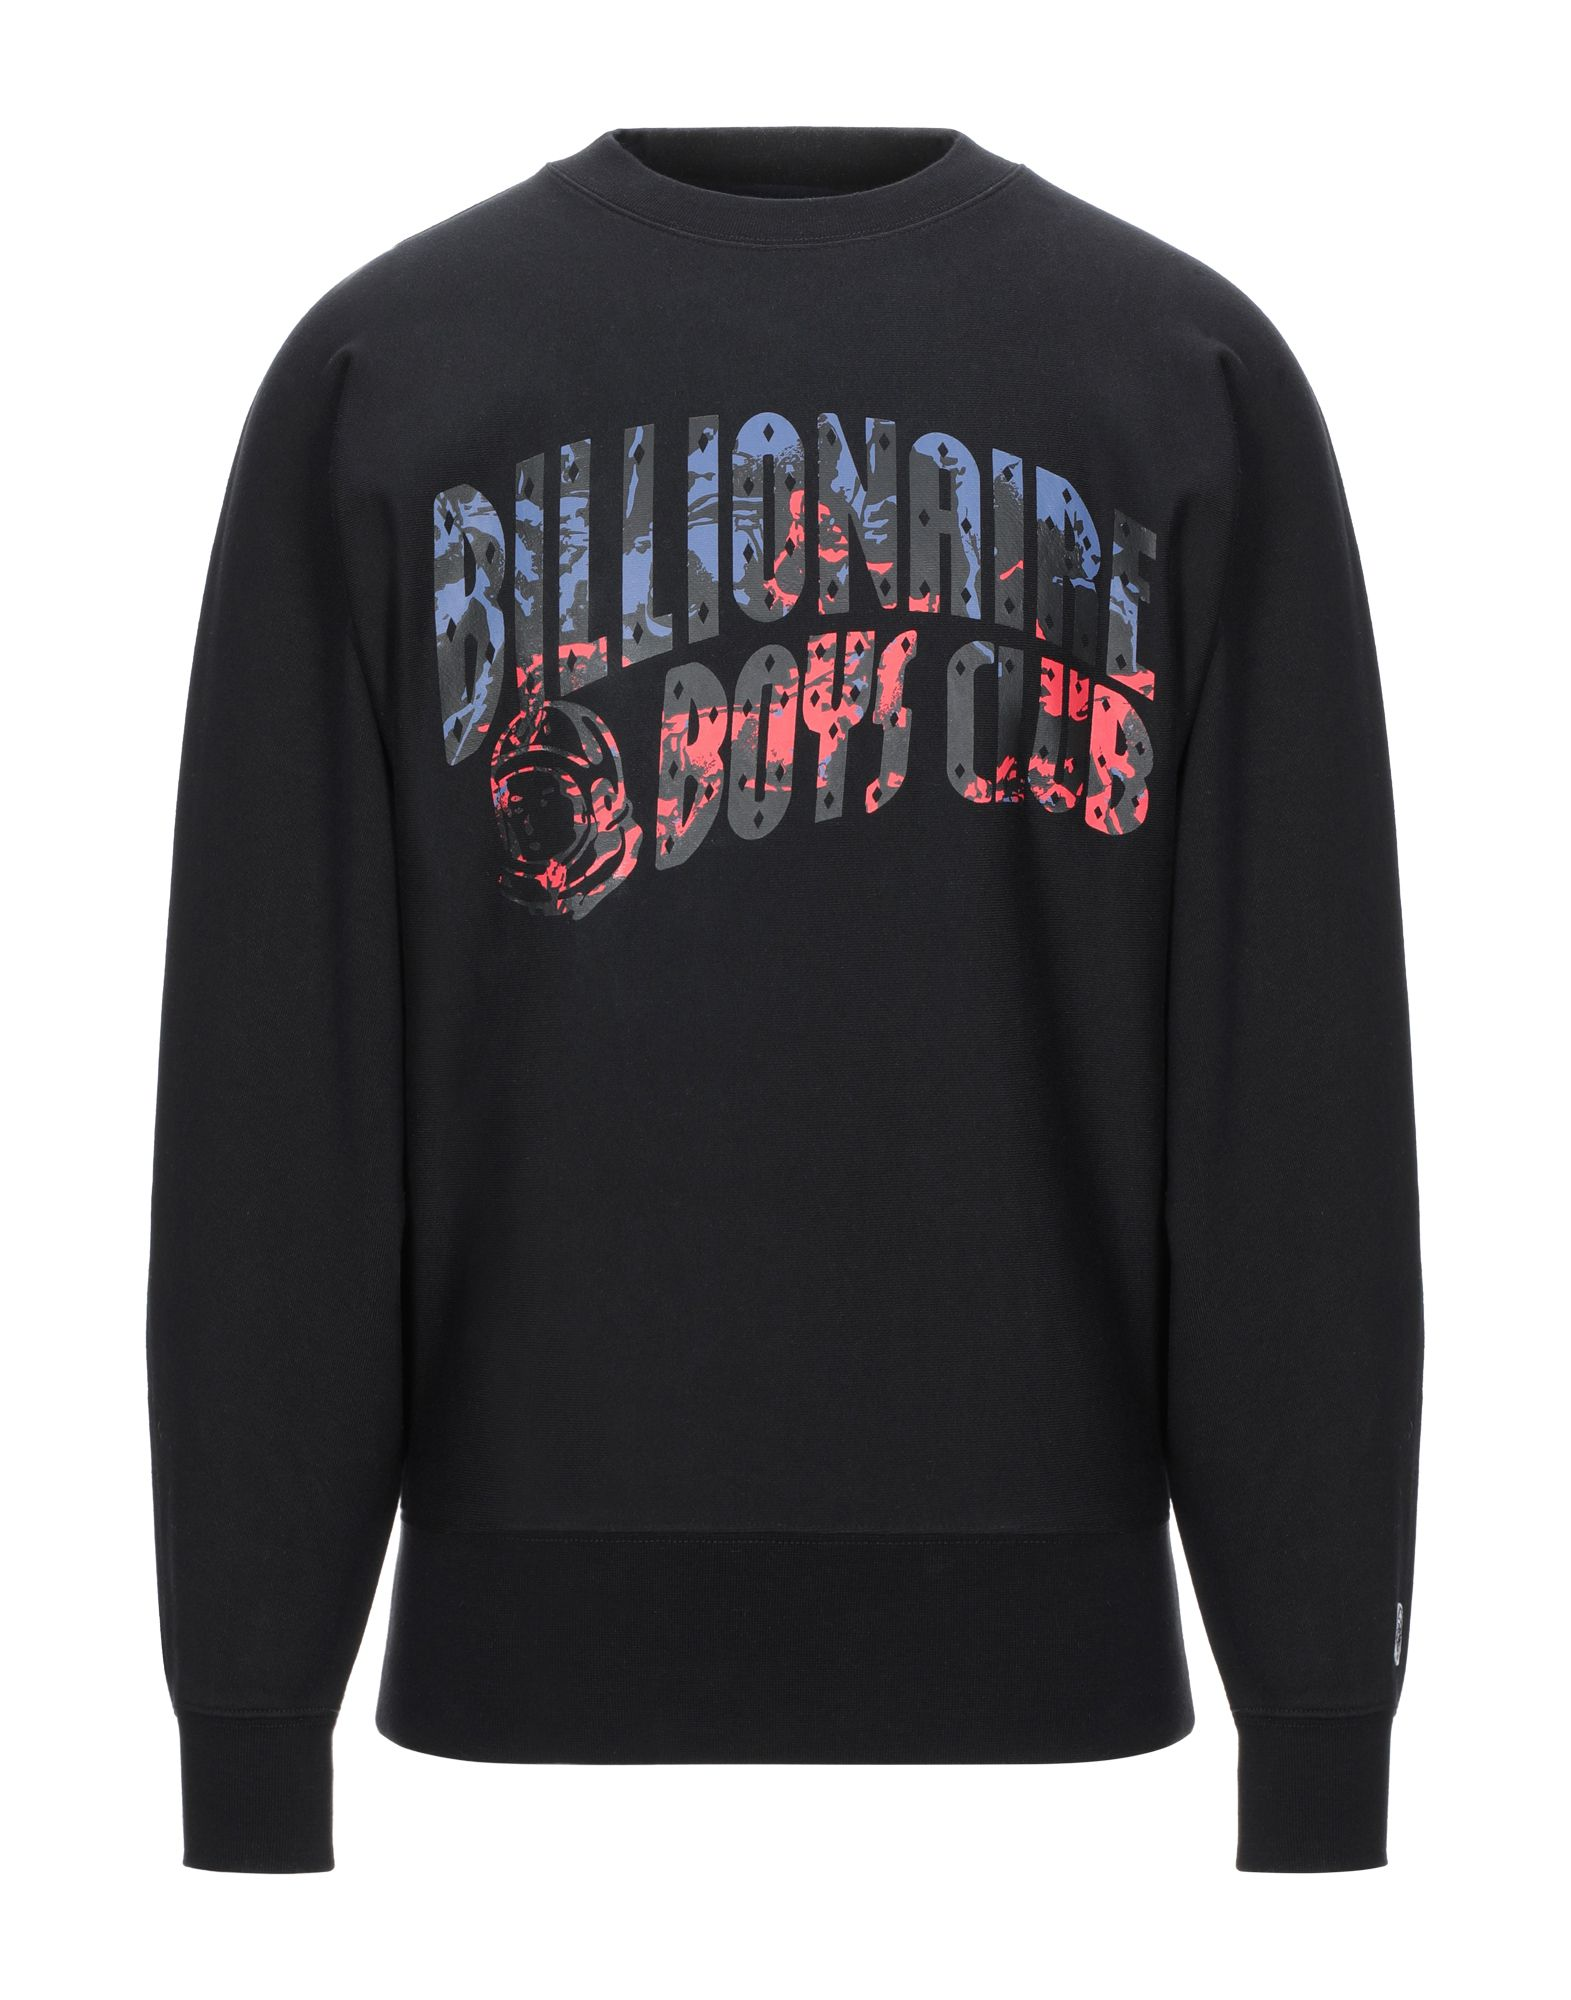 BILLIONAIRE BOYS CLUB Толстовка толстовка bbc billionaire boys club